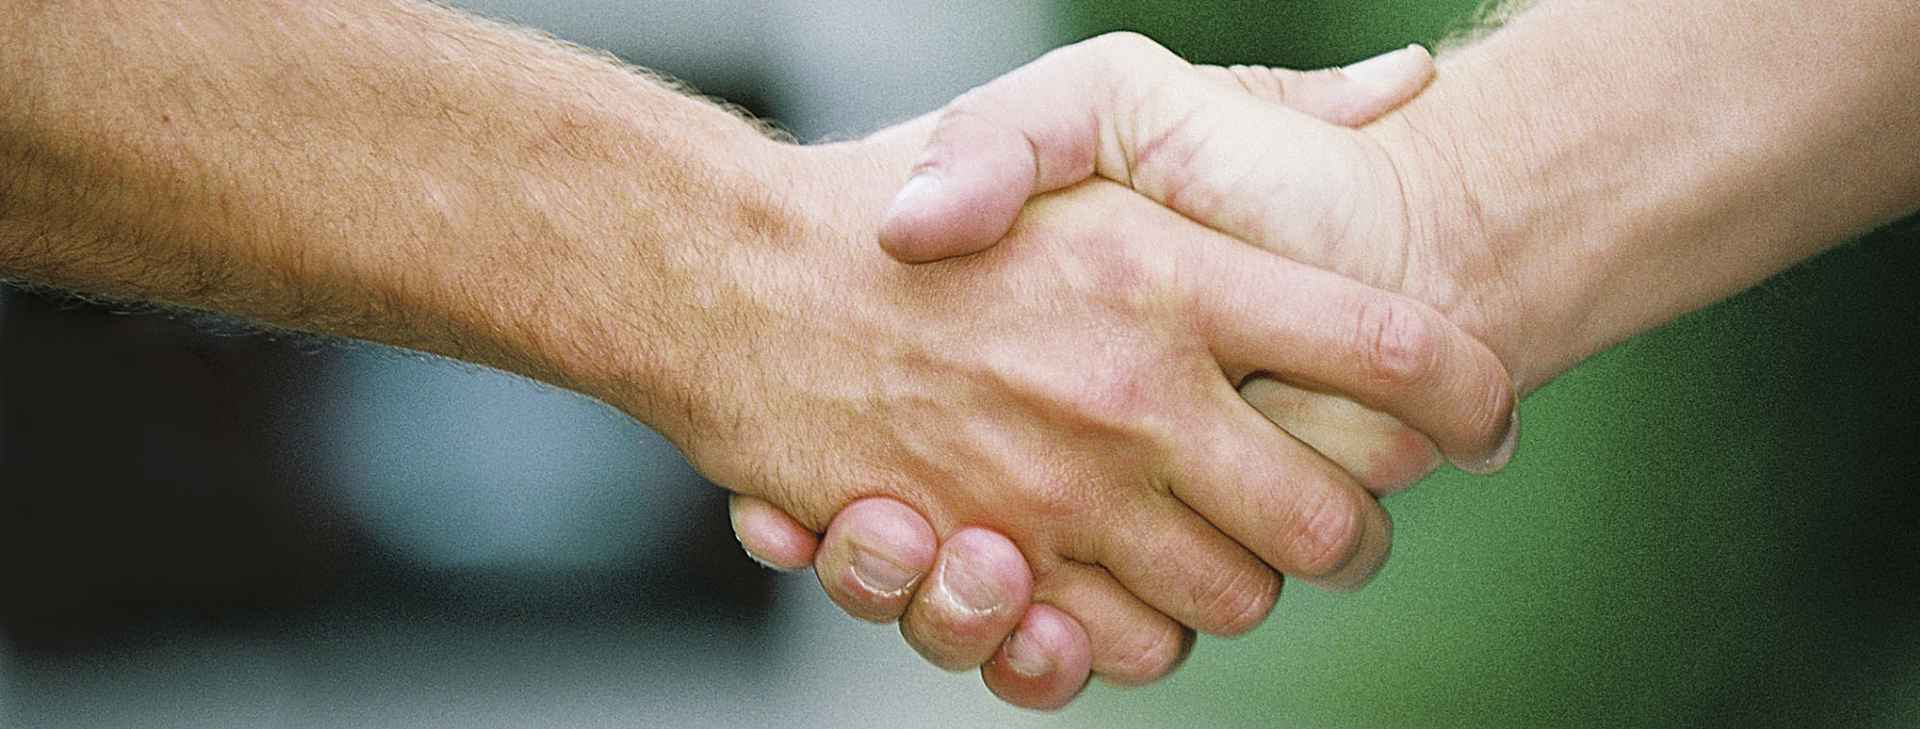 STRONG-HANDSHAKE cropped